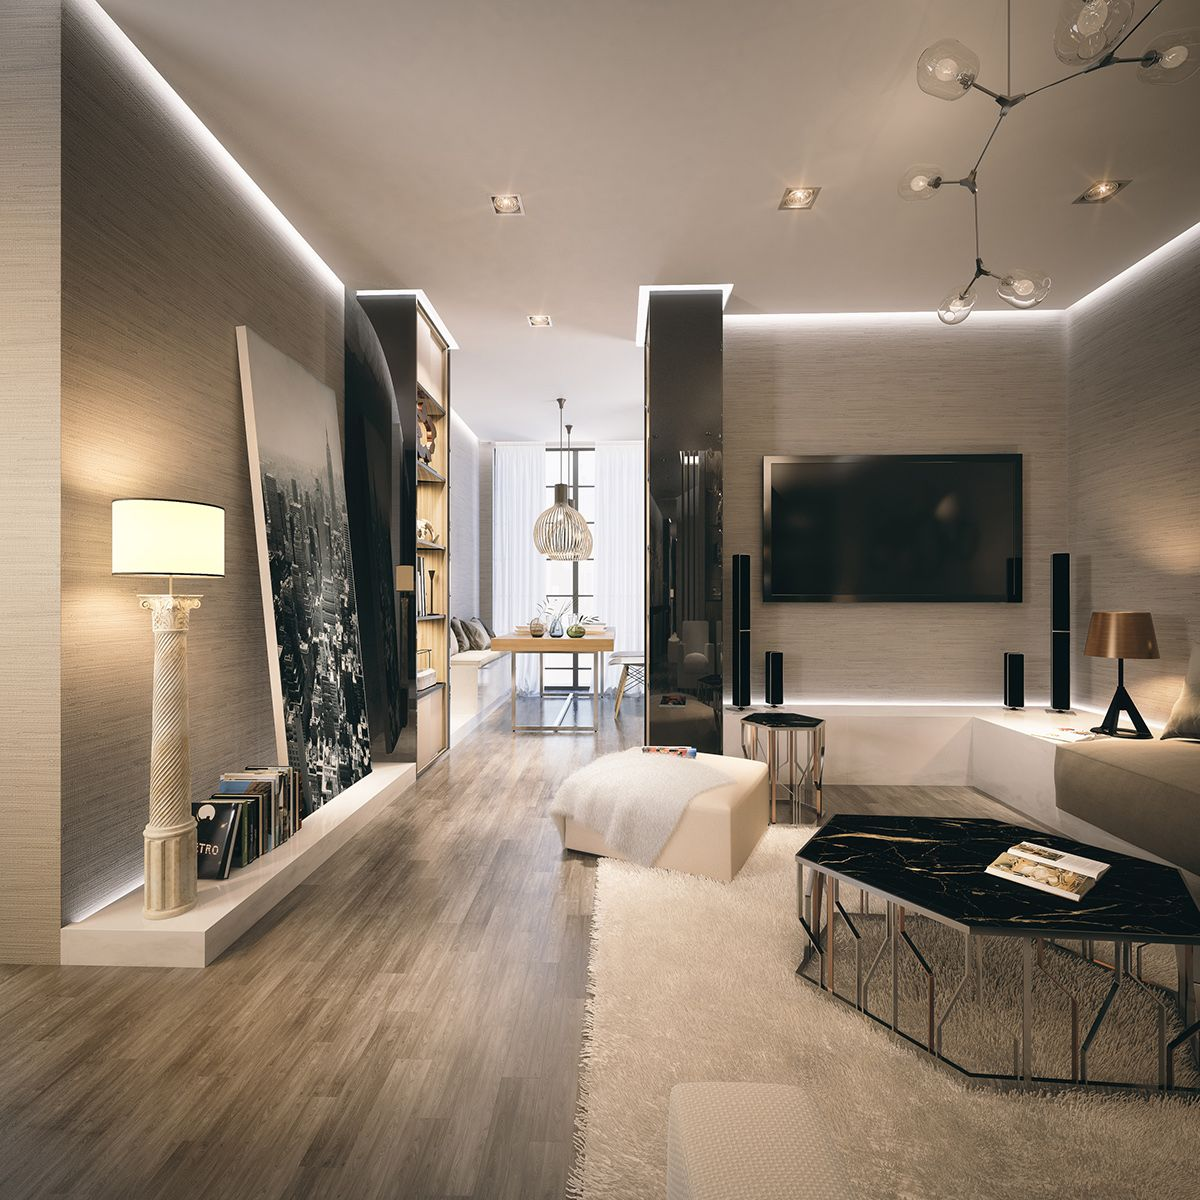 Luxury Apartments Interior. Private luxury apartments complex in Western Africa  Full CGI project competed 2014 for Tao